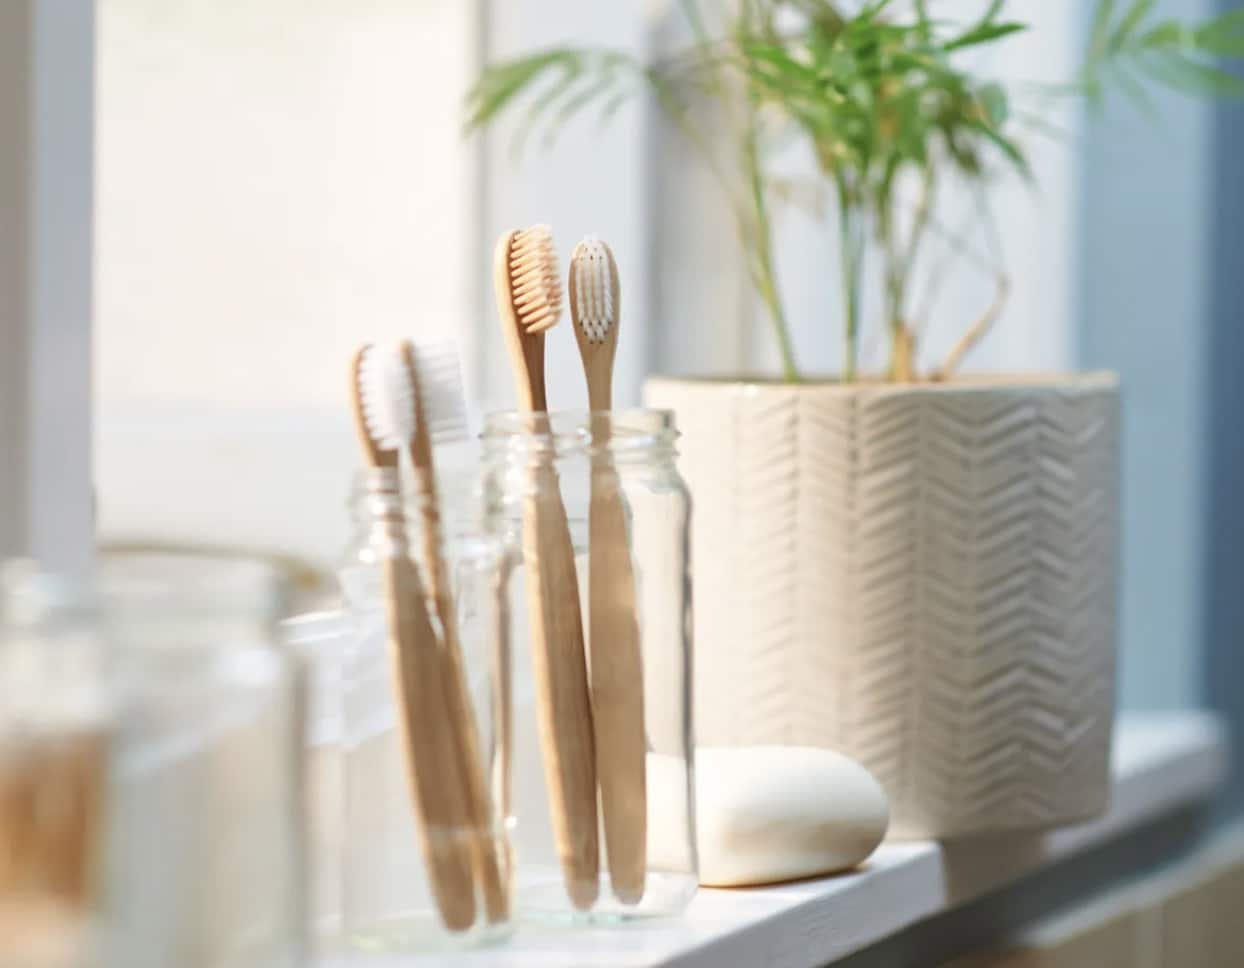 How Long Do Bamboo Toothbrushes